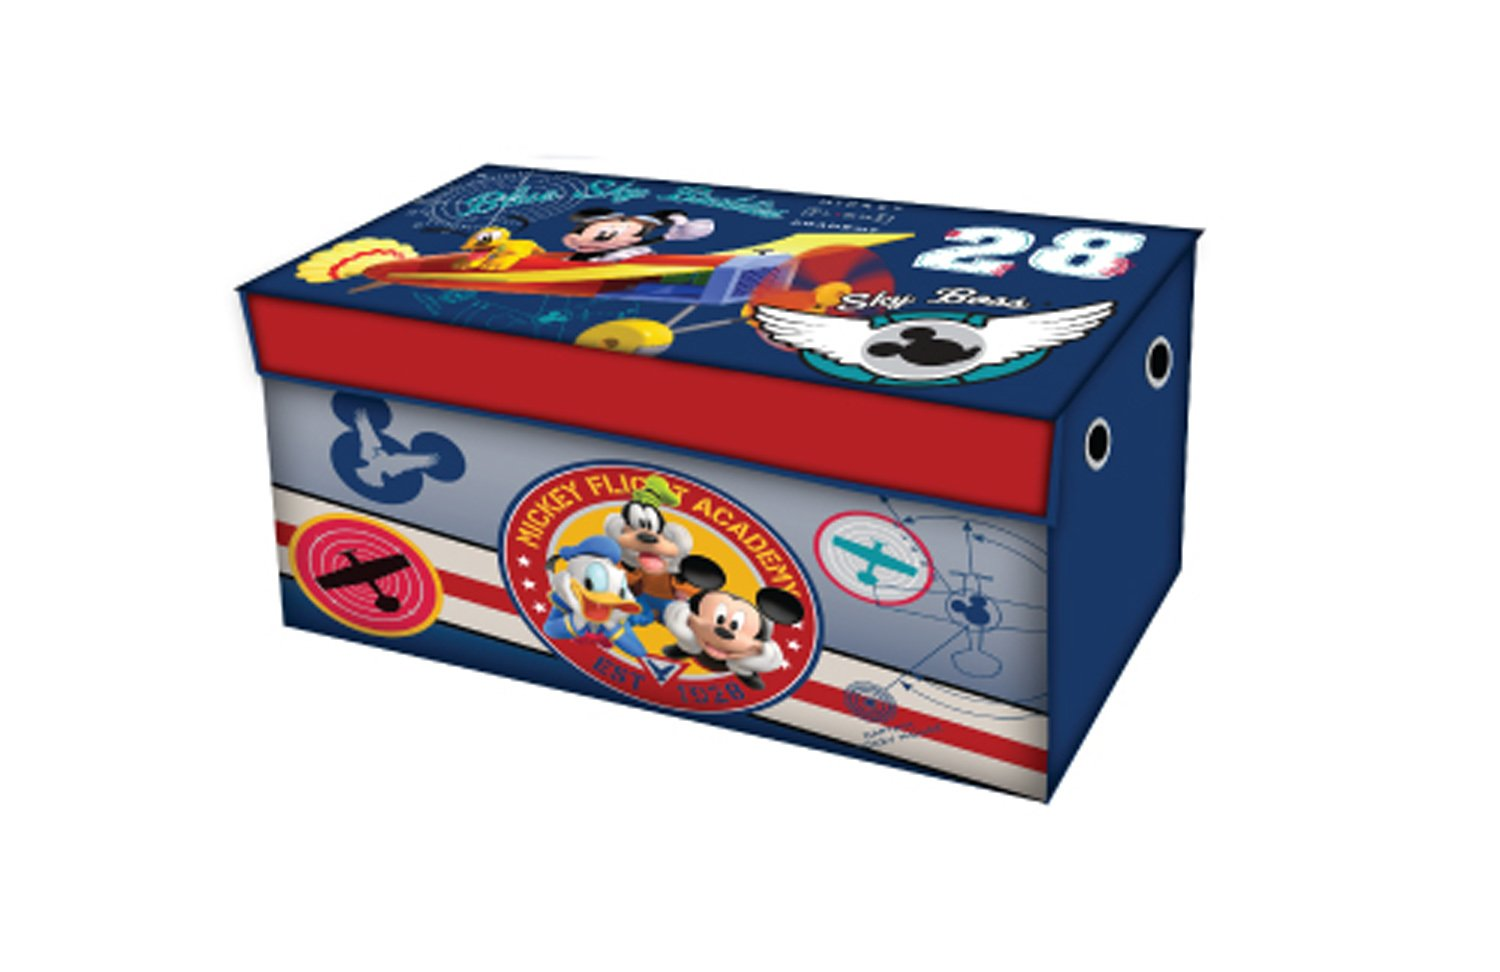 Storage Organizer Toy Box Disney Frozen Playroom Bedroom: Mickey Mouse Toy Box Kids Storage Childrens Playroom